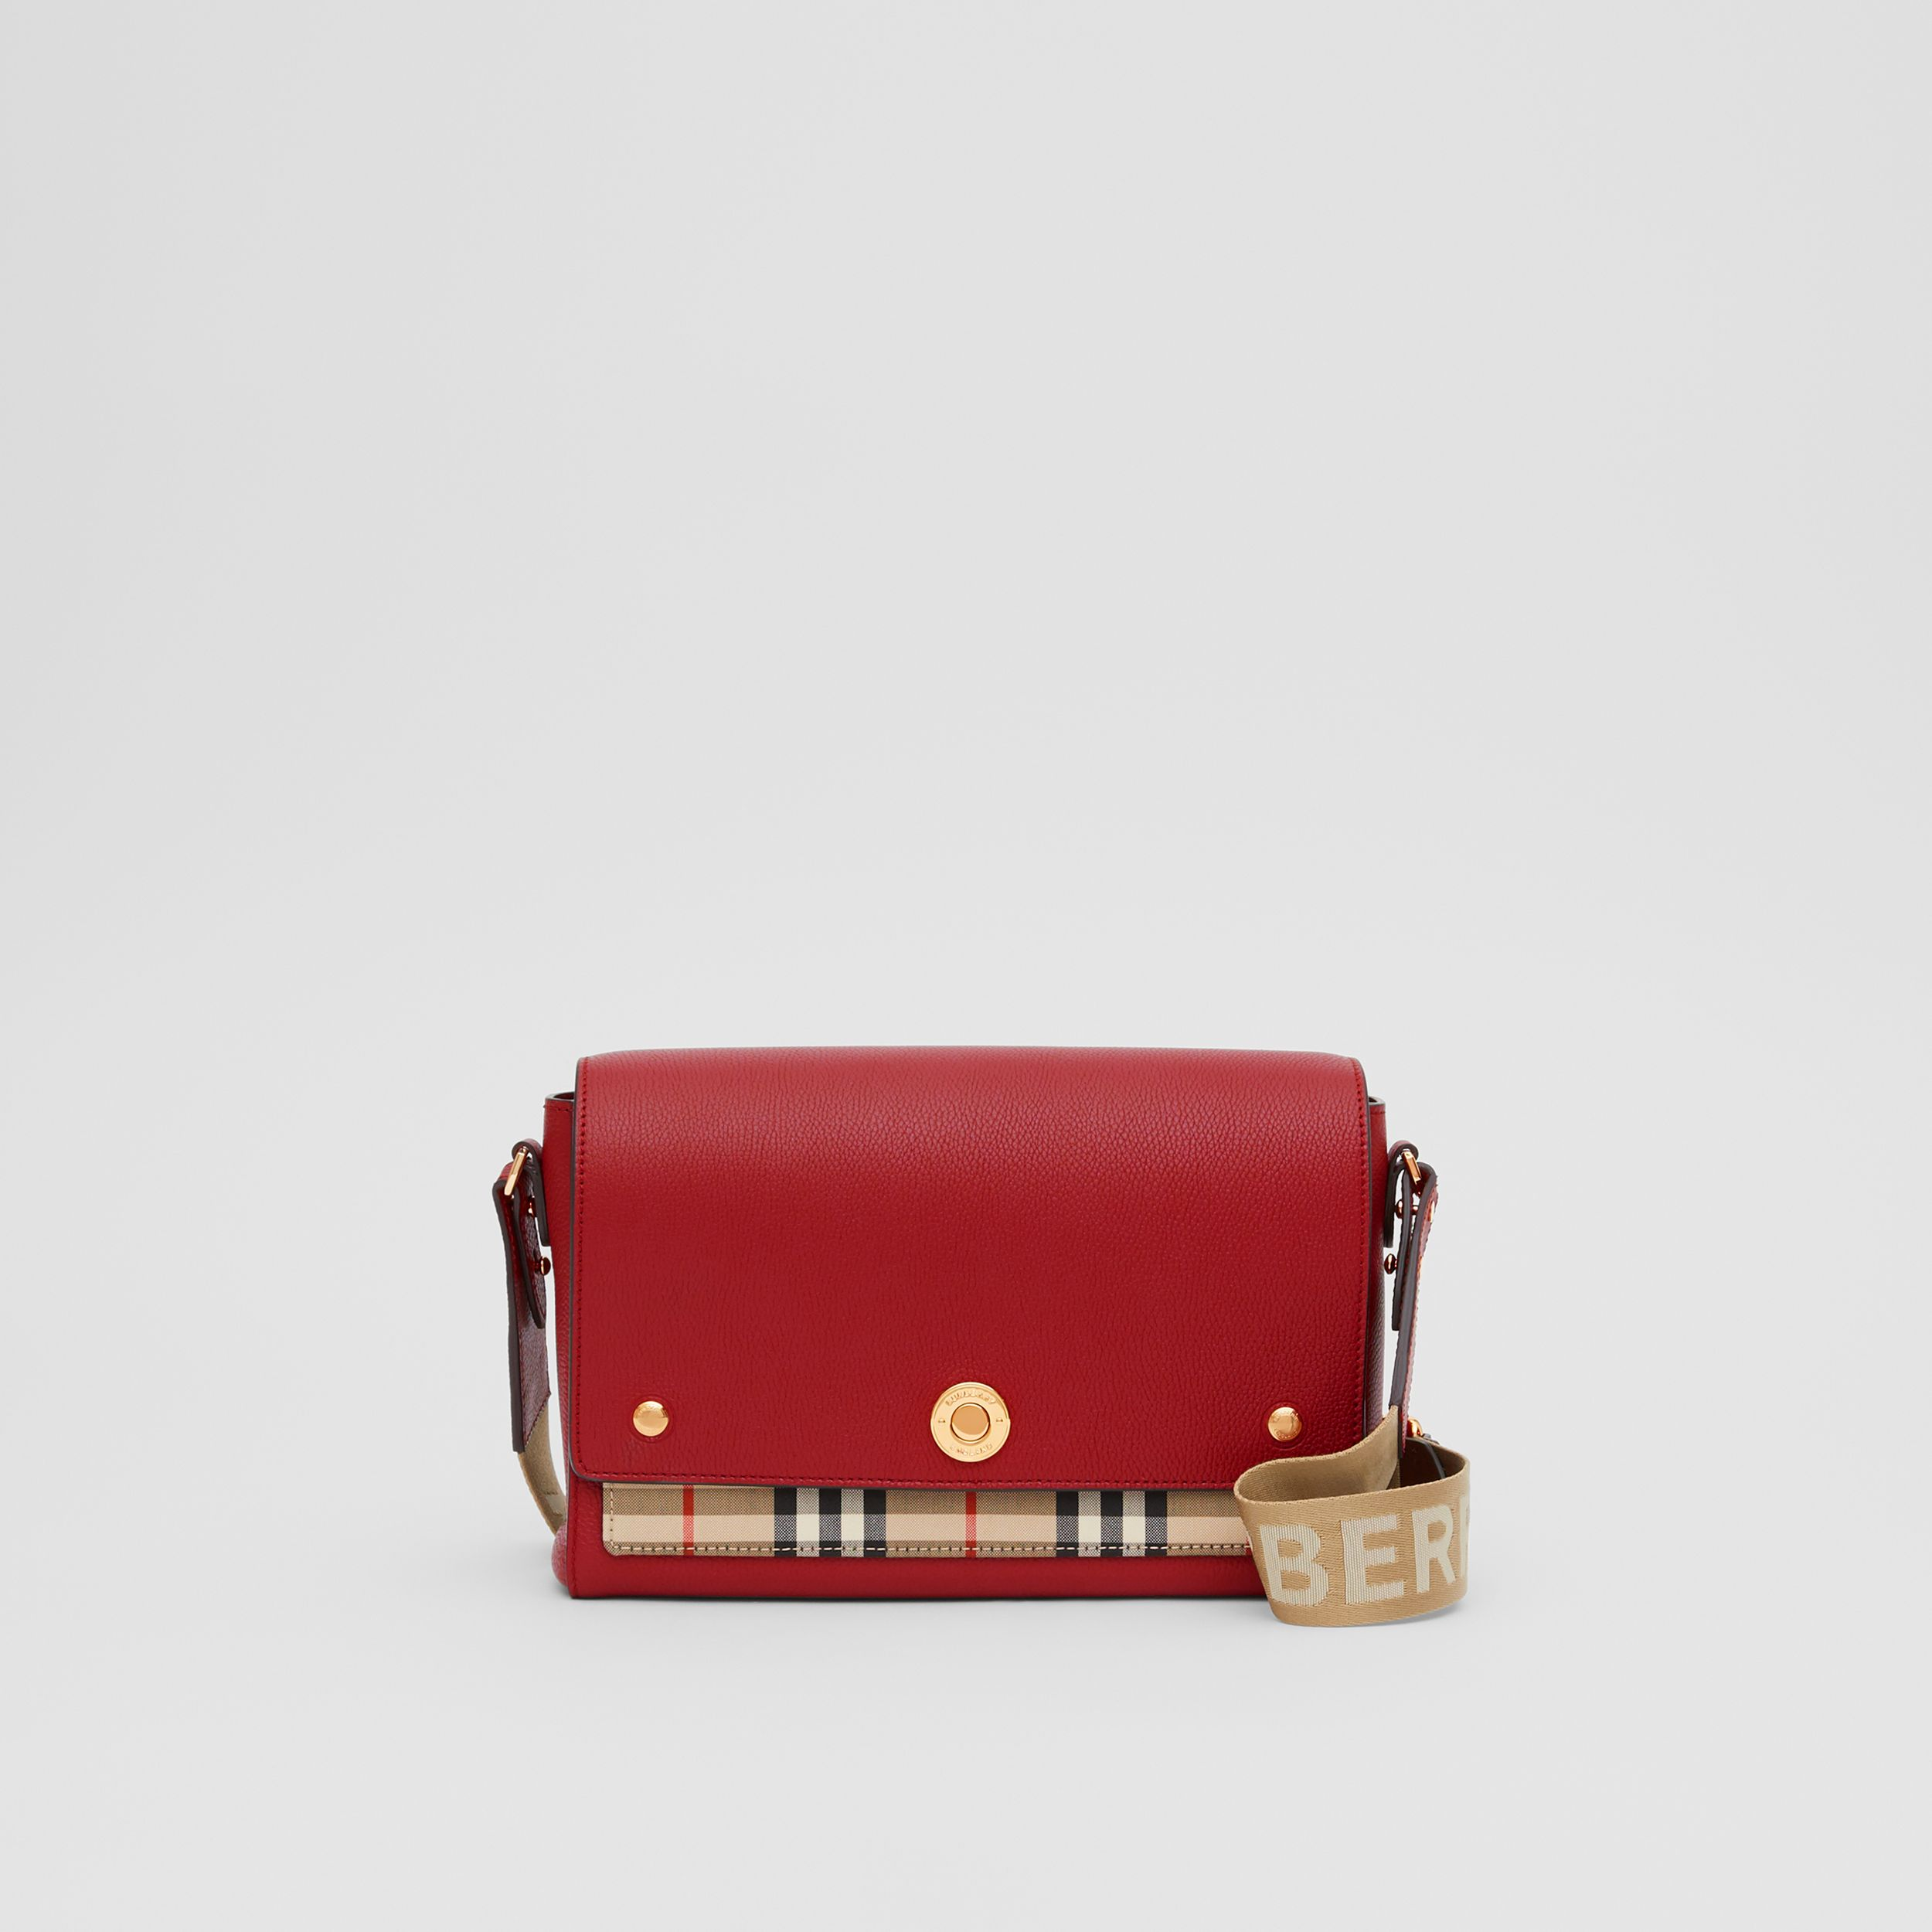 Leather and Vintage Check Note Crossbody Bag in Dark Carmine - Women | Burberry United States - 1